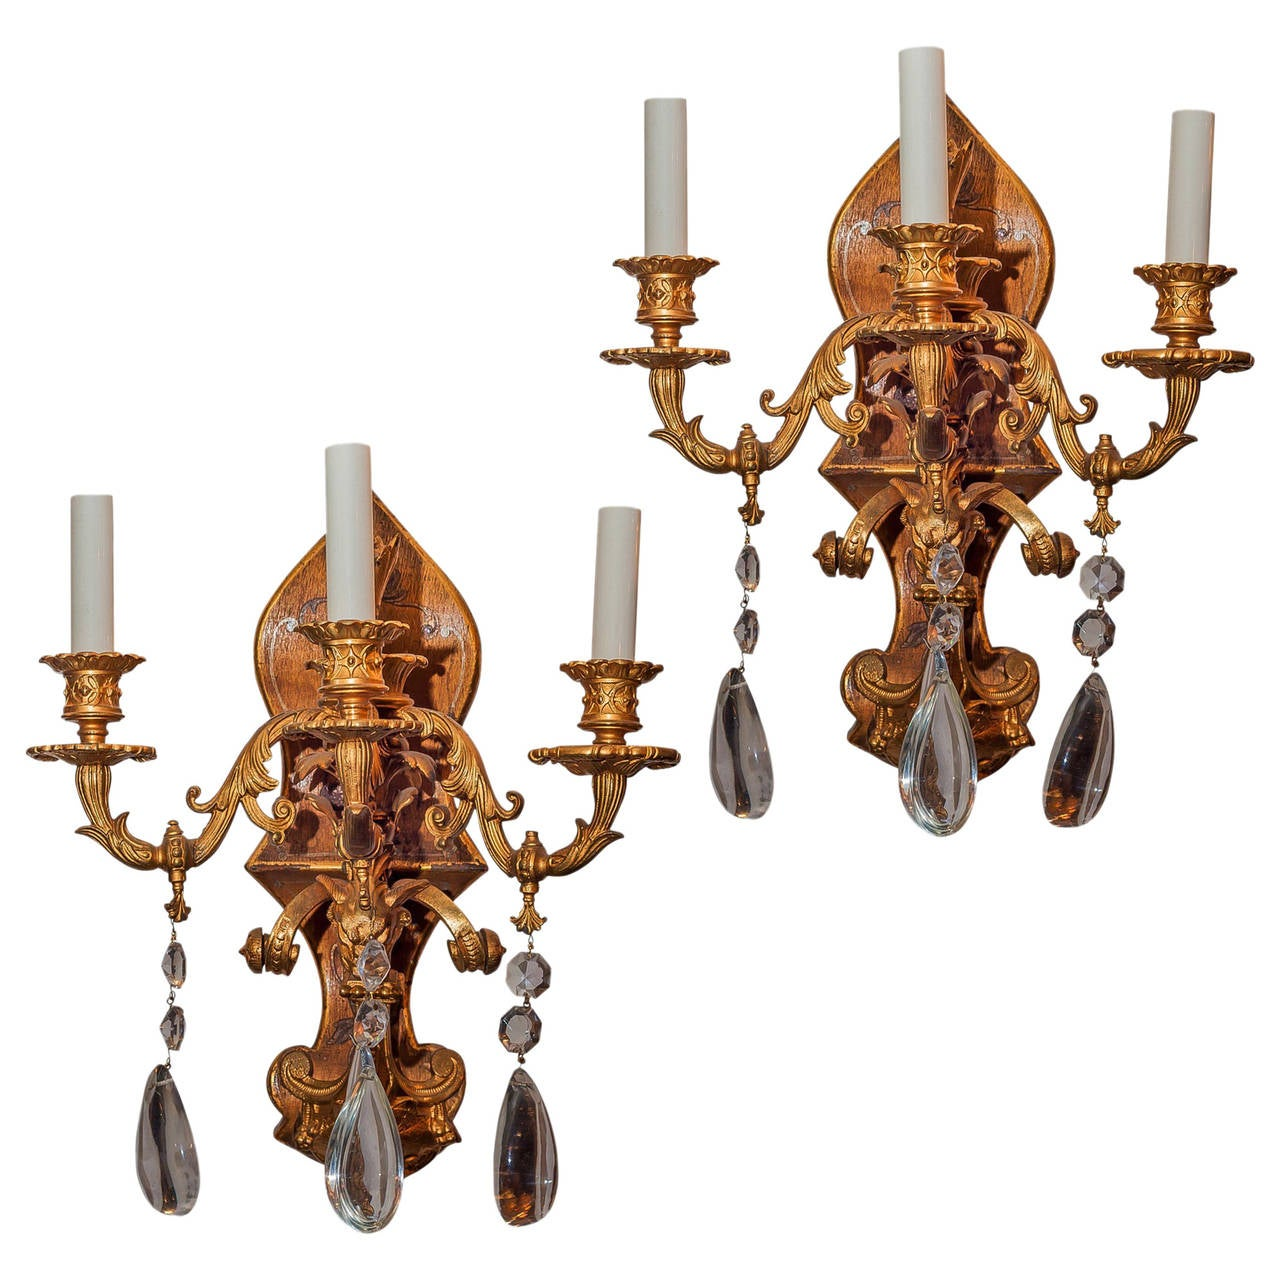 Painting Brass Wall Sconces : Pair of Gilt Metal Painted Chinoiserie Three-Arm Wall Light Sconces For Sale at 1stdibs